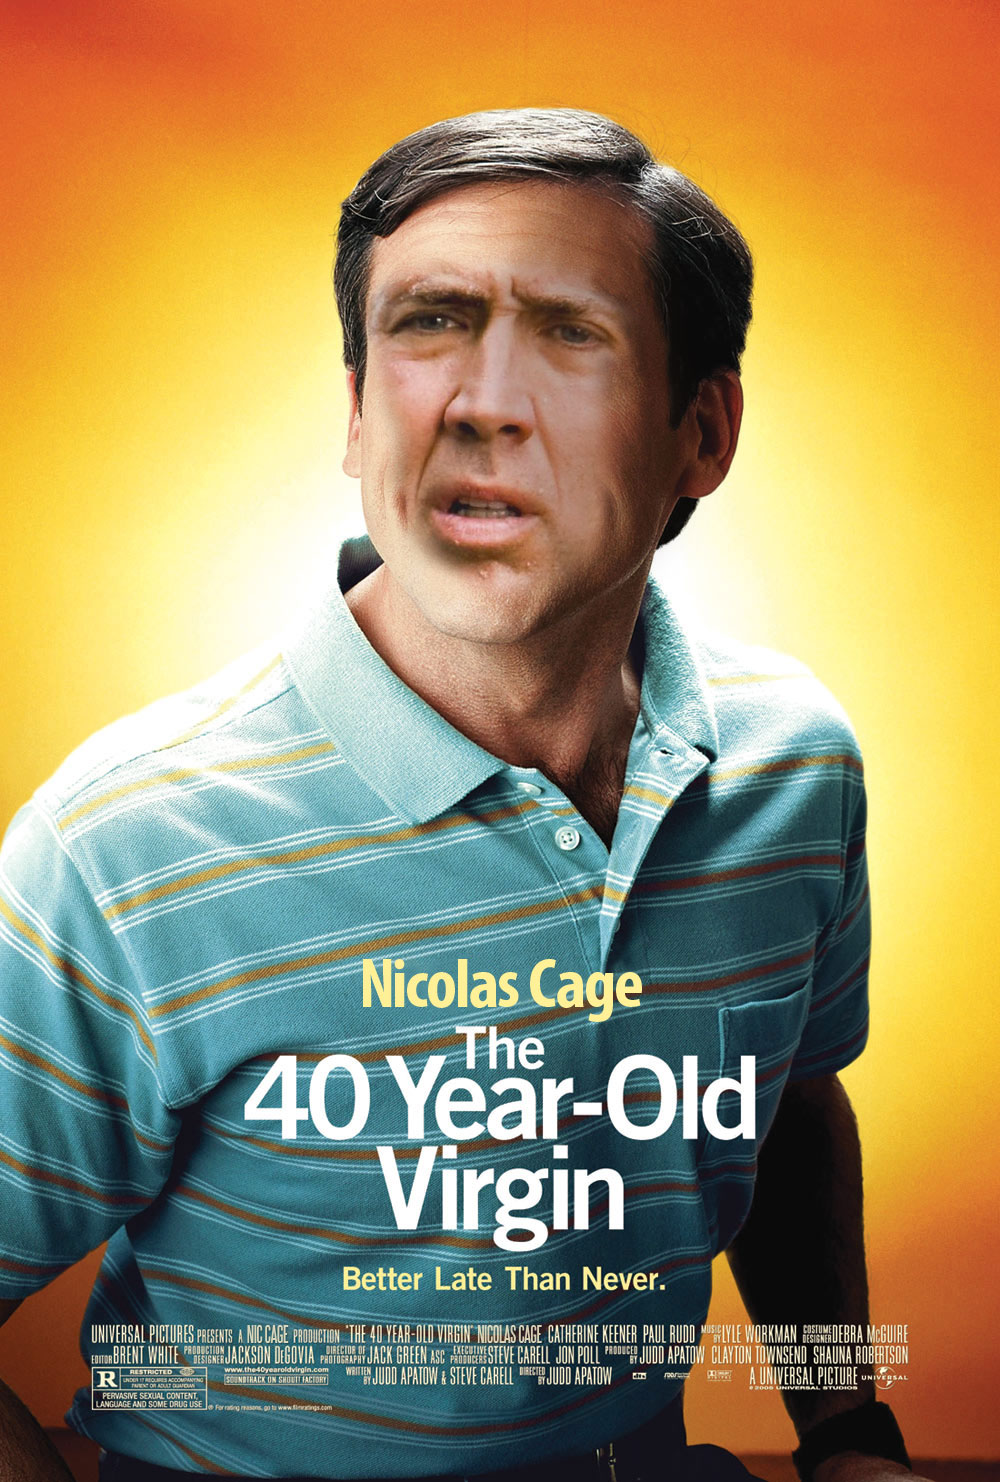 Le Cage Is Folly - Nicolas Cage as The 40 Year-Old Virgin